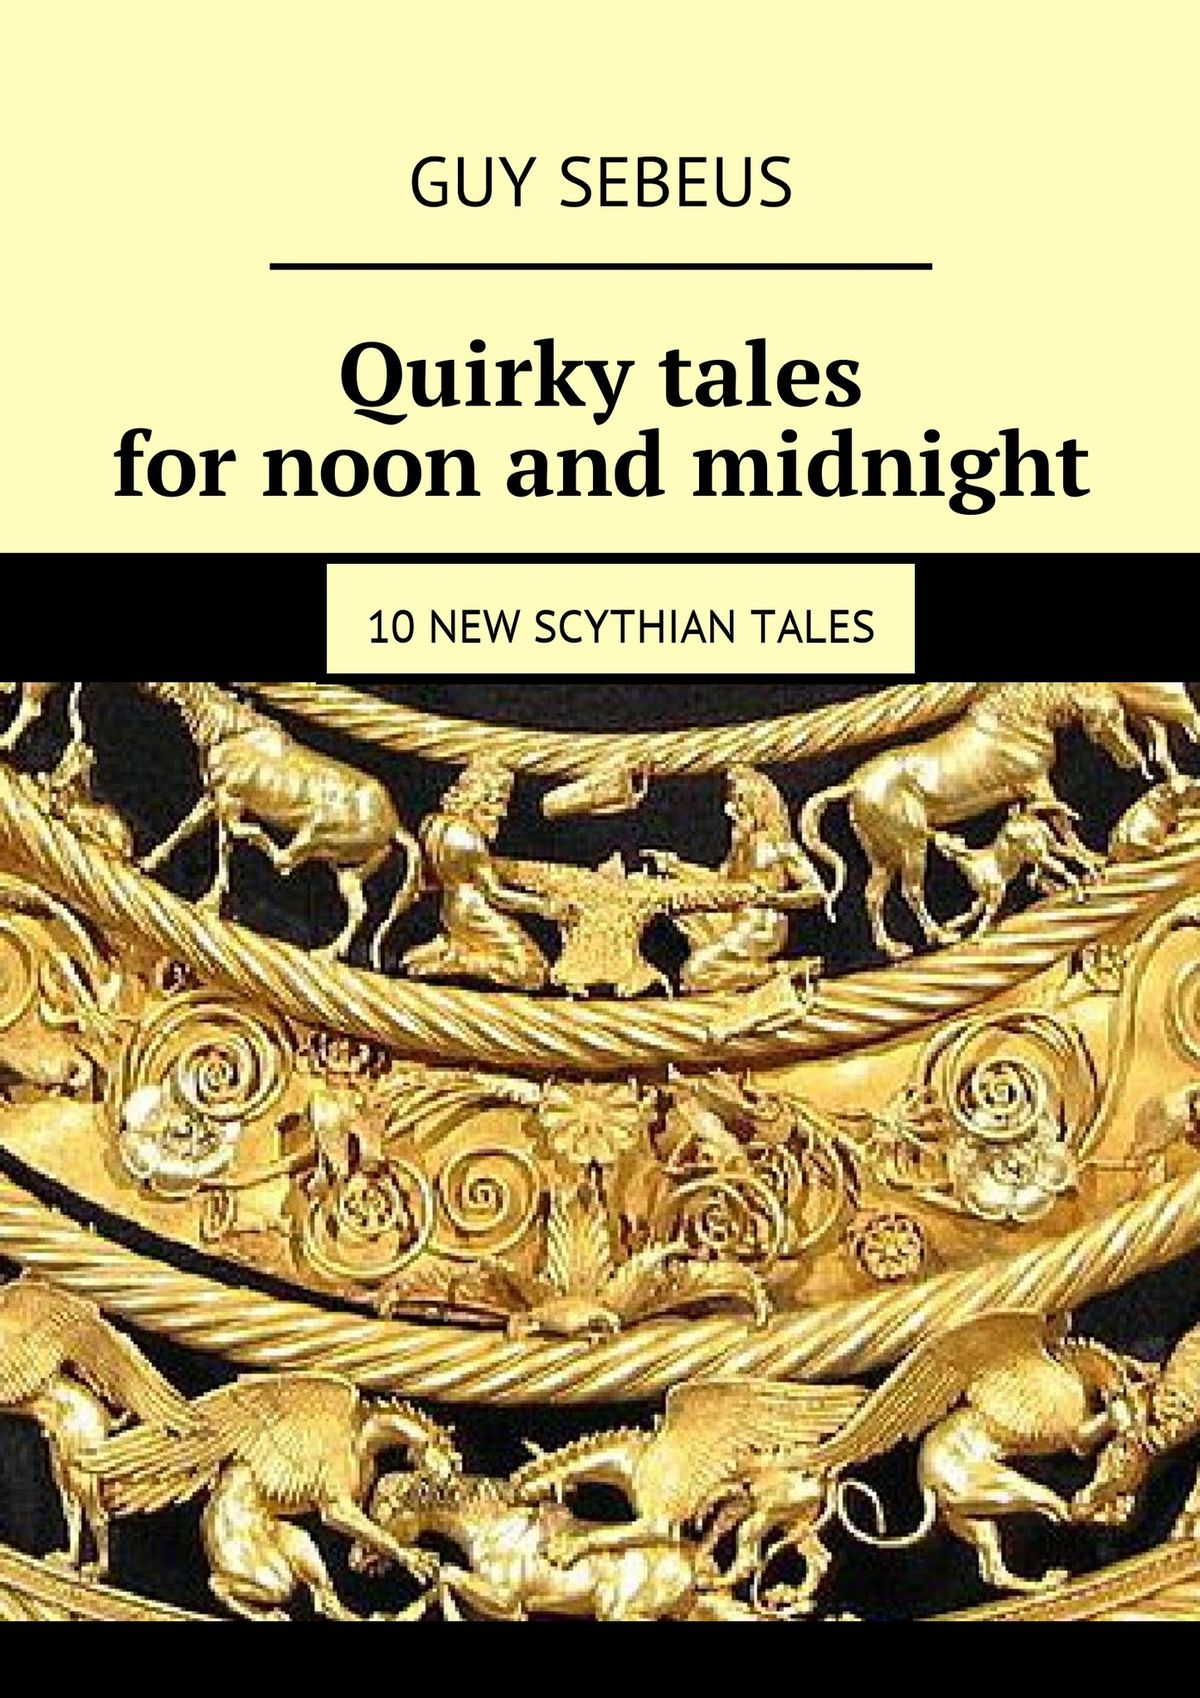 Guy Sebeus Quirky tales for noon and midnight. 10 new Scythian tales